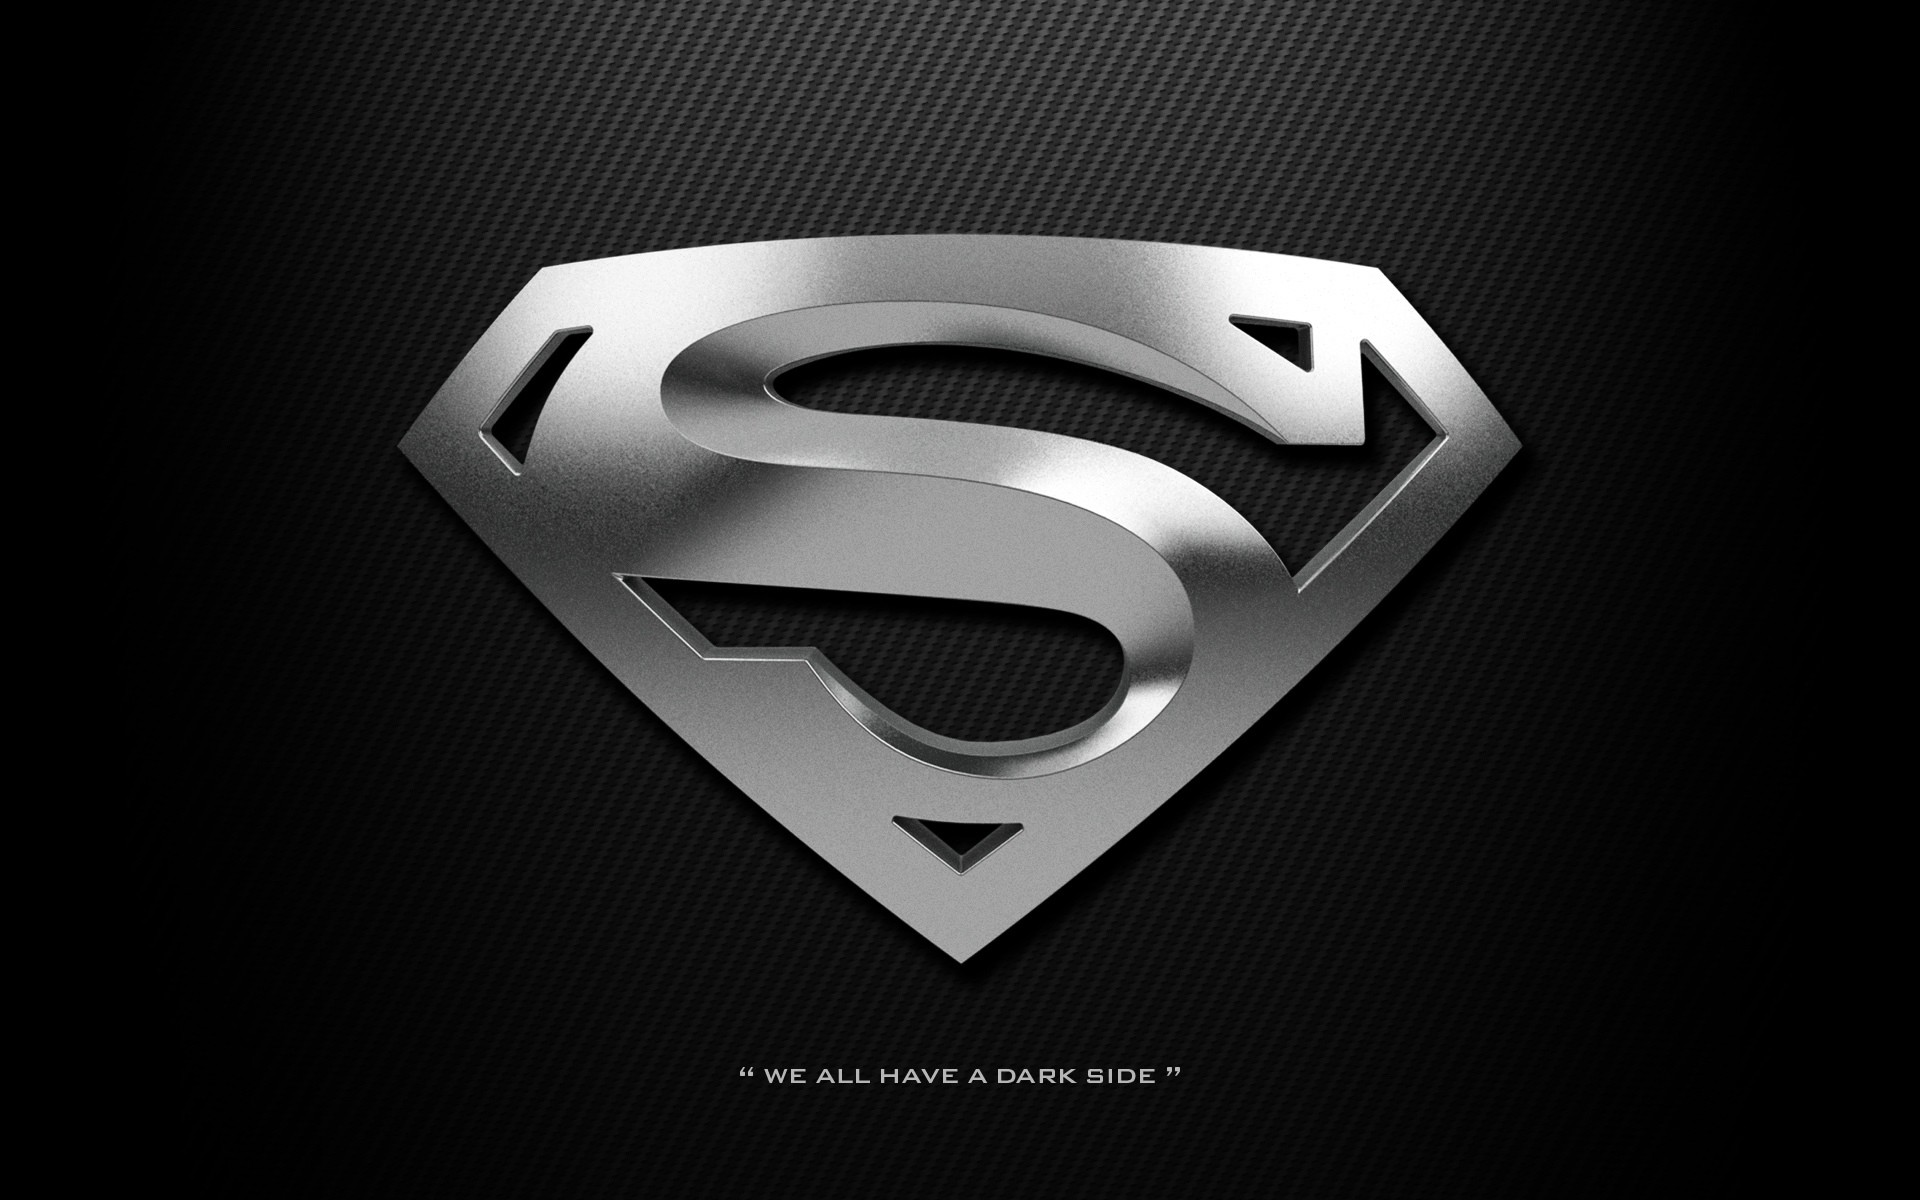 Black Superman Logo Wallpaper - WallpaperSafari